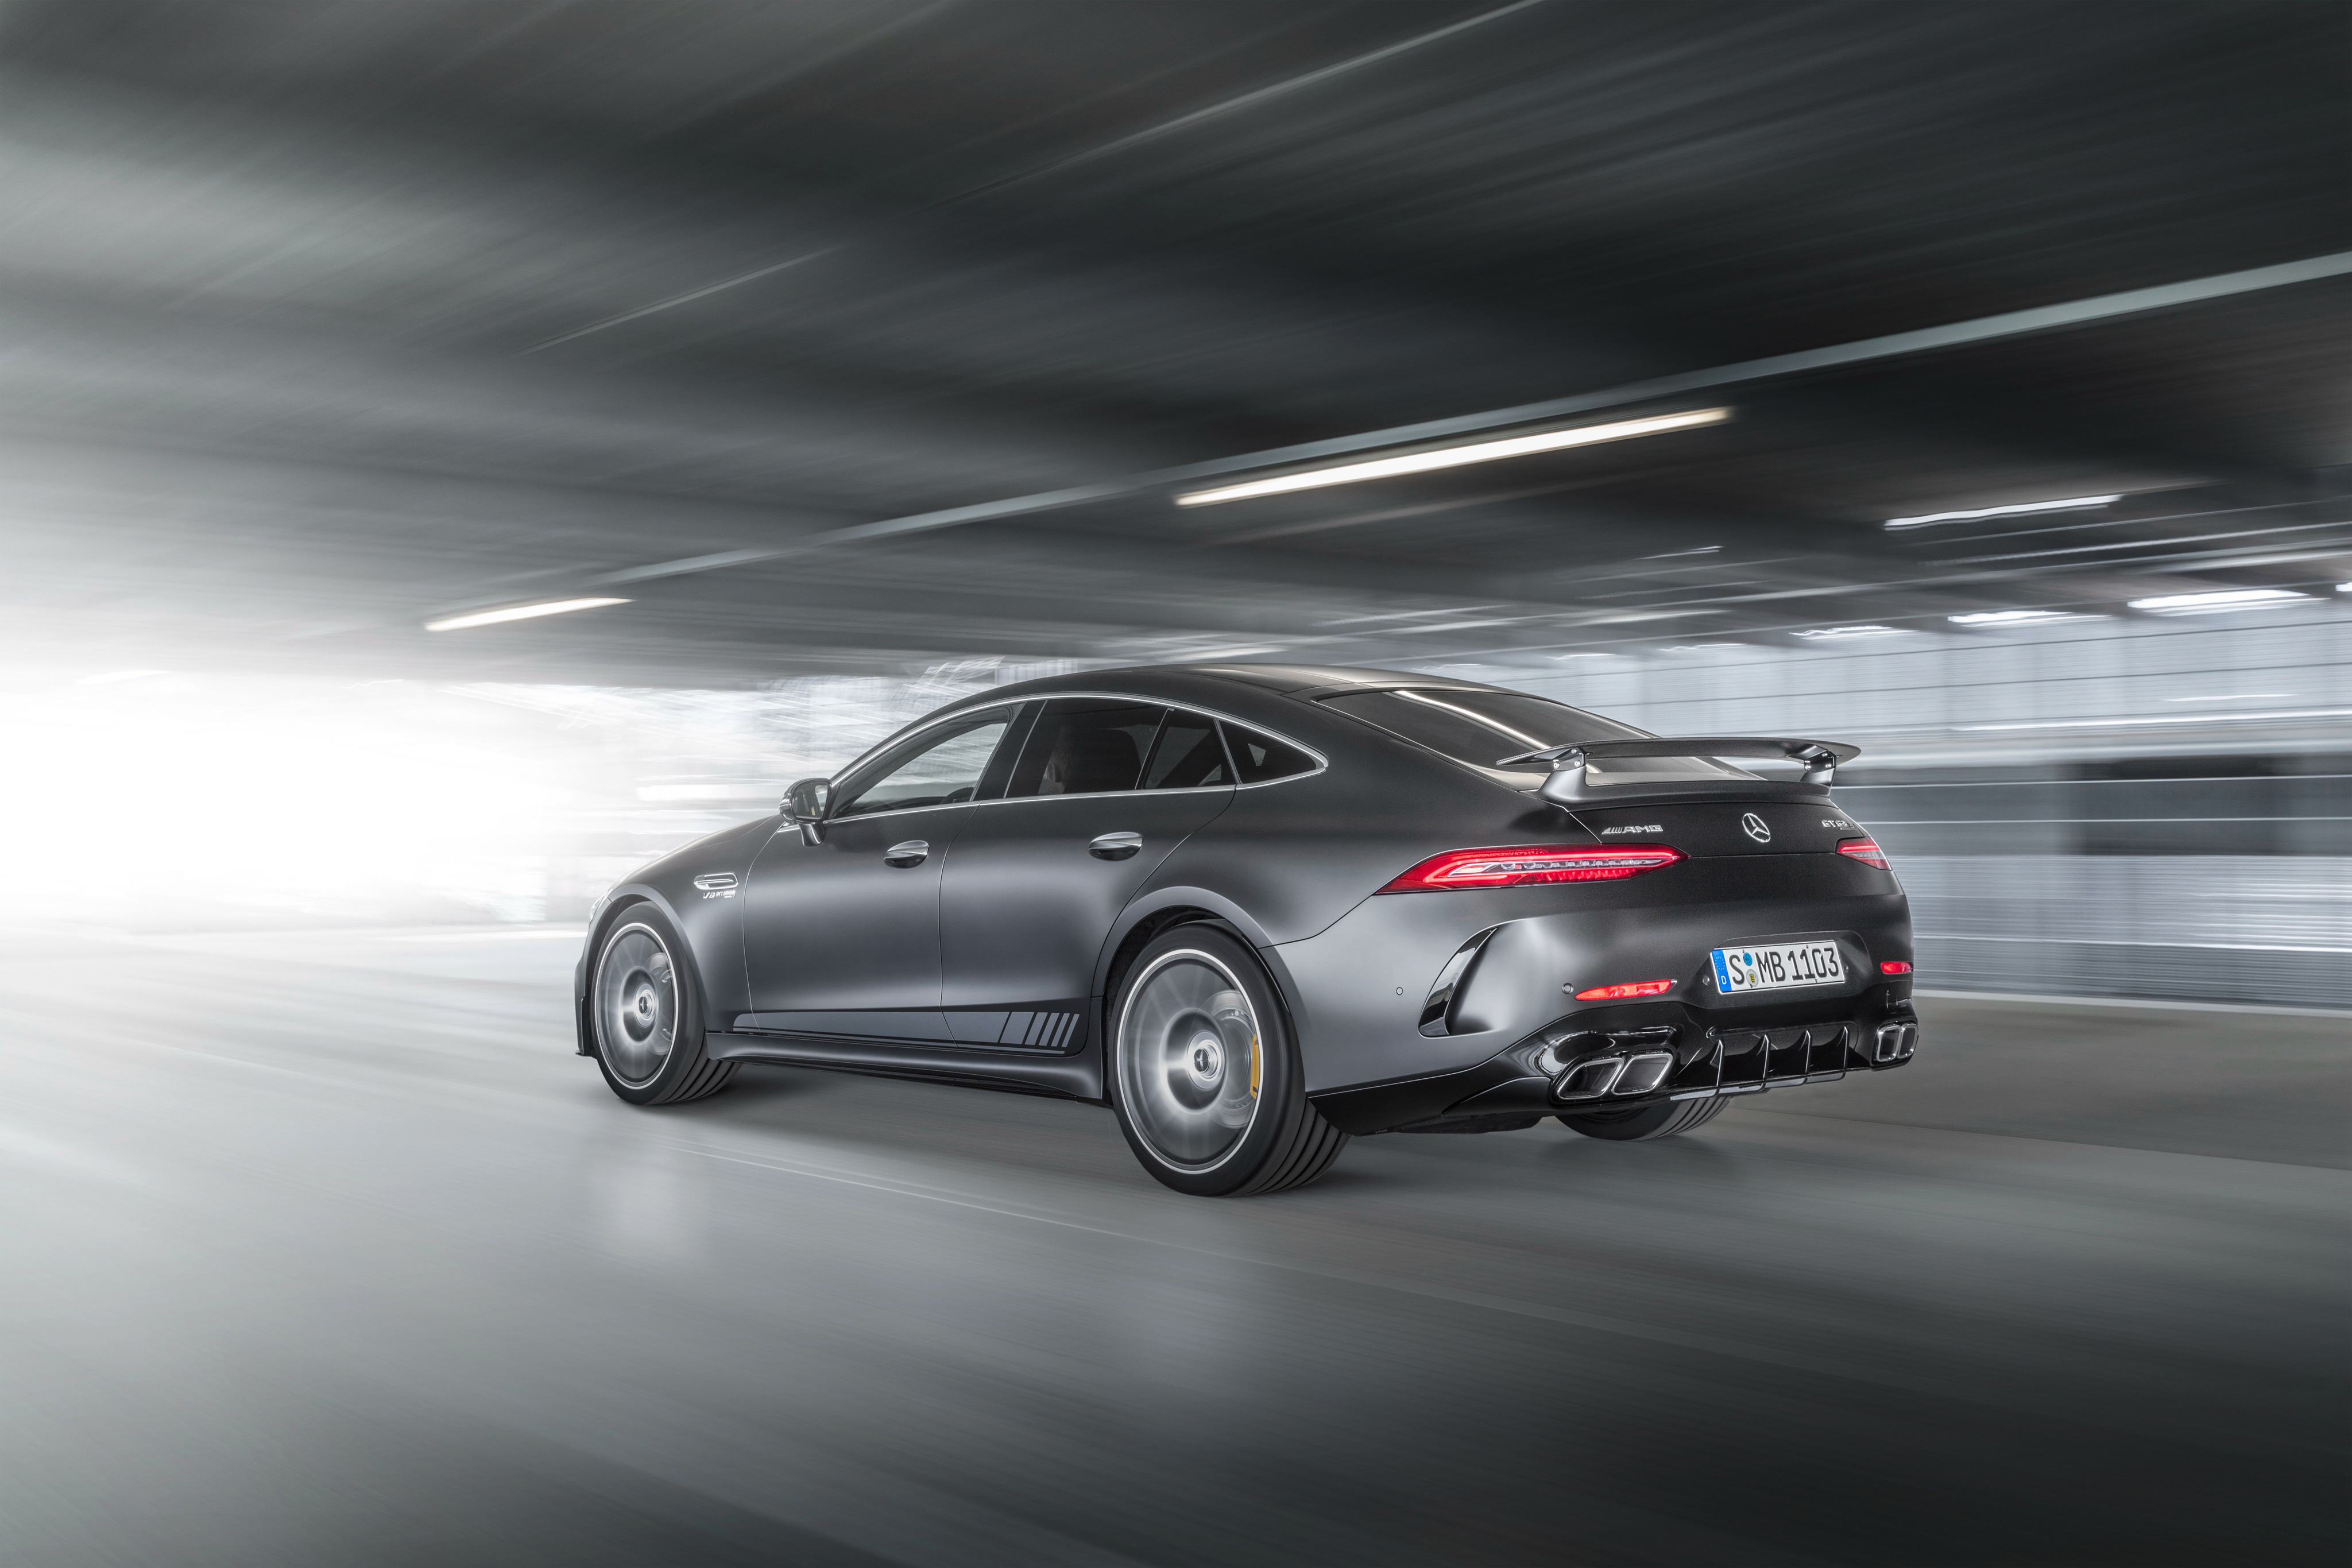 Mercedes AMG GT 63 S 4MATIC 4 Door Coupe Edition 1 Rear ...